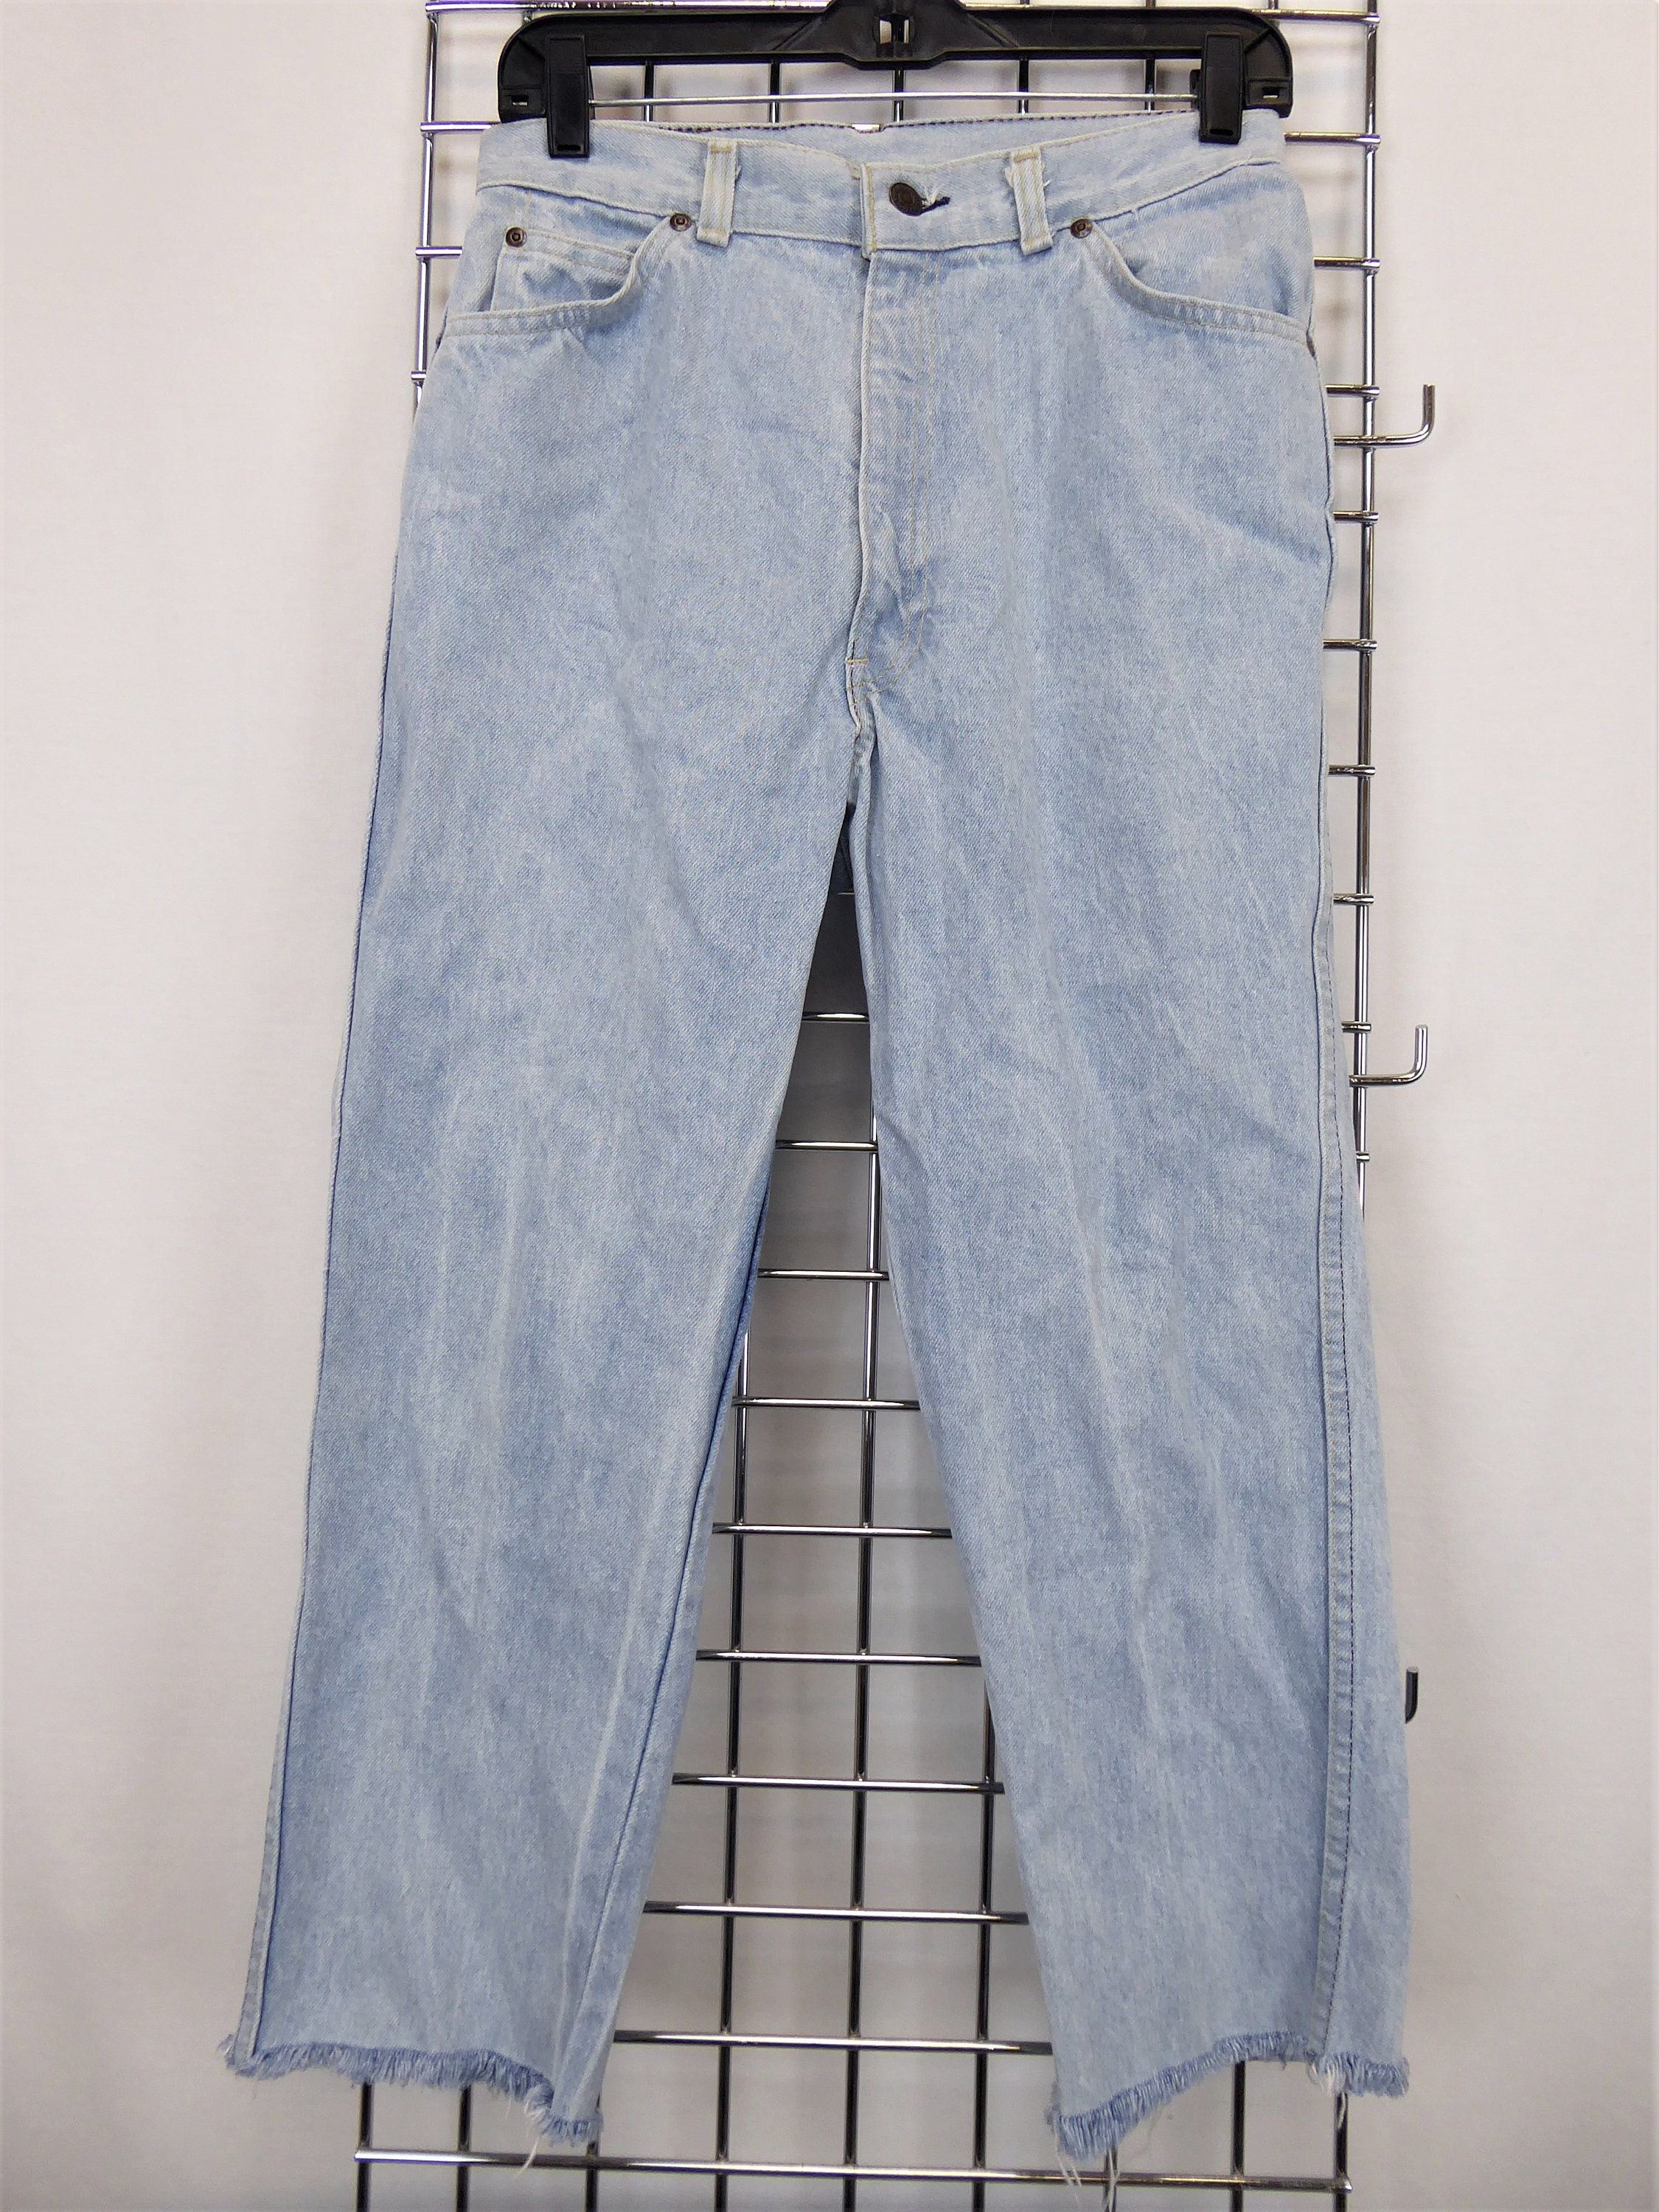 190c95d6 Levi's Cutoff Jeans, Women's 28 Waist, Vintage 80s/90s Levi's White Tab,  Frayed Cropped Jeans, 90s High Waist Jeans